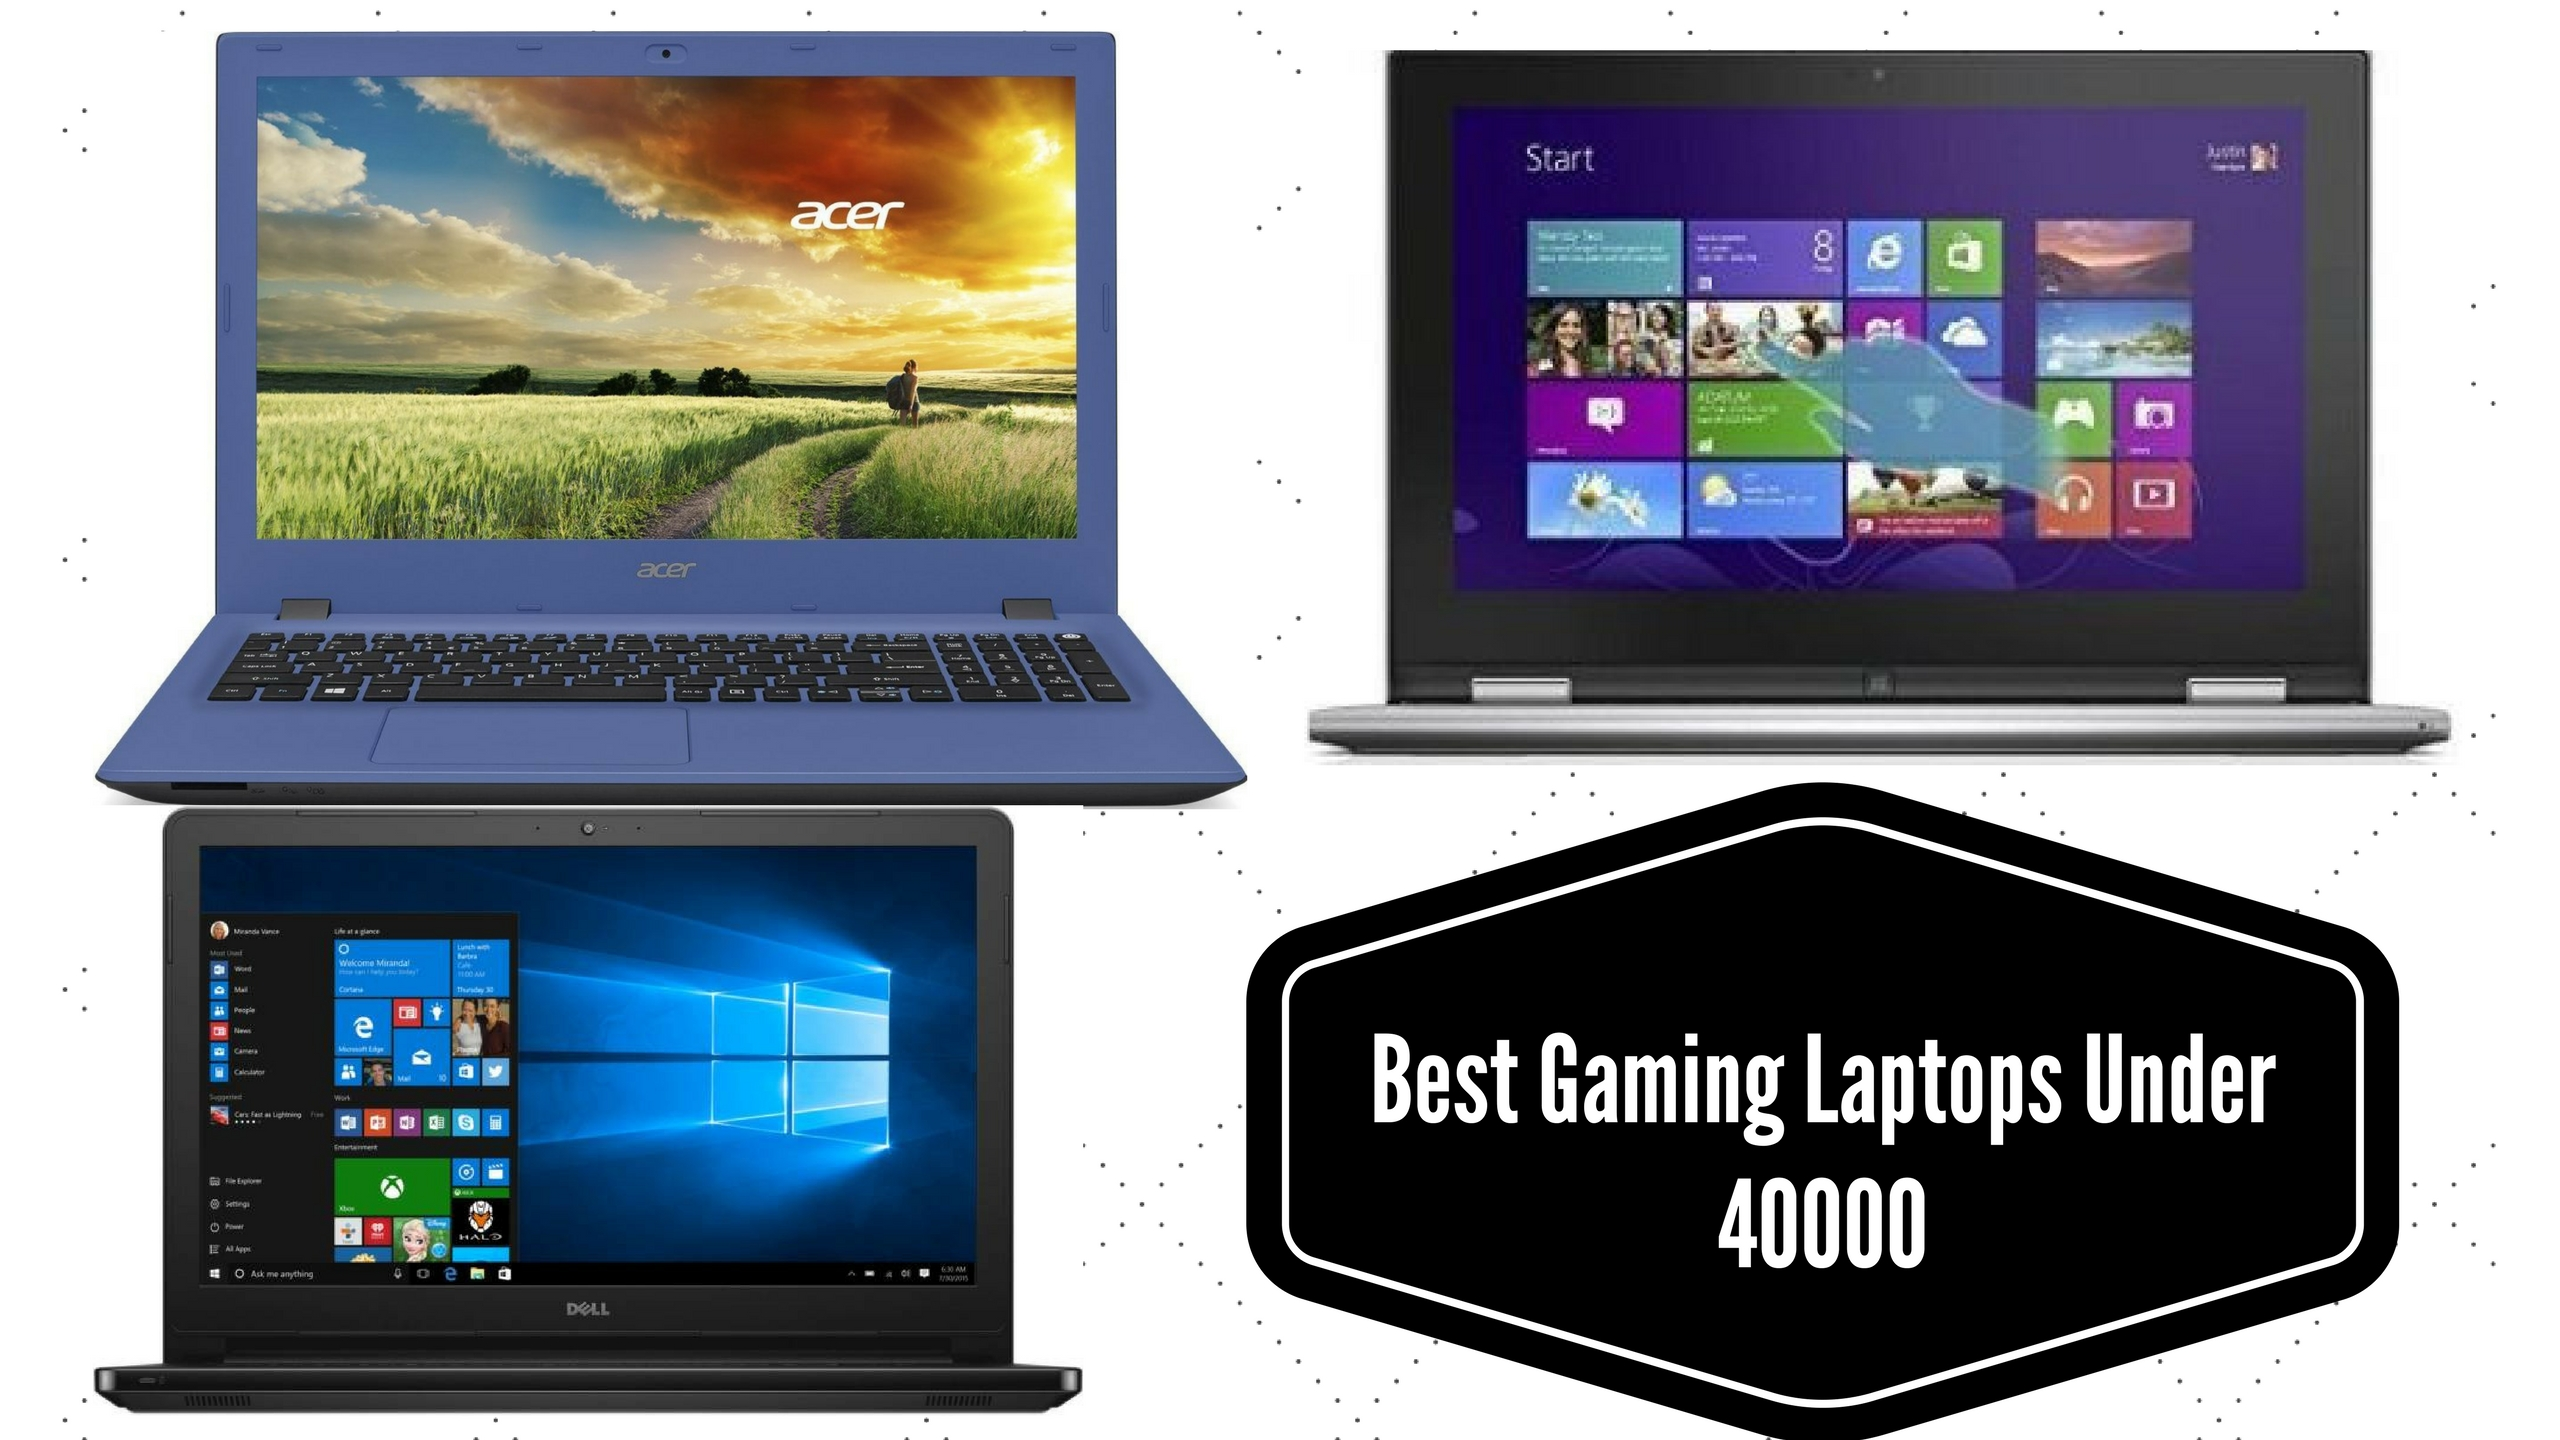 Best Gaming Laptops Under 40000